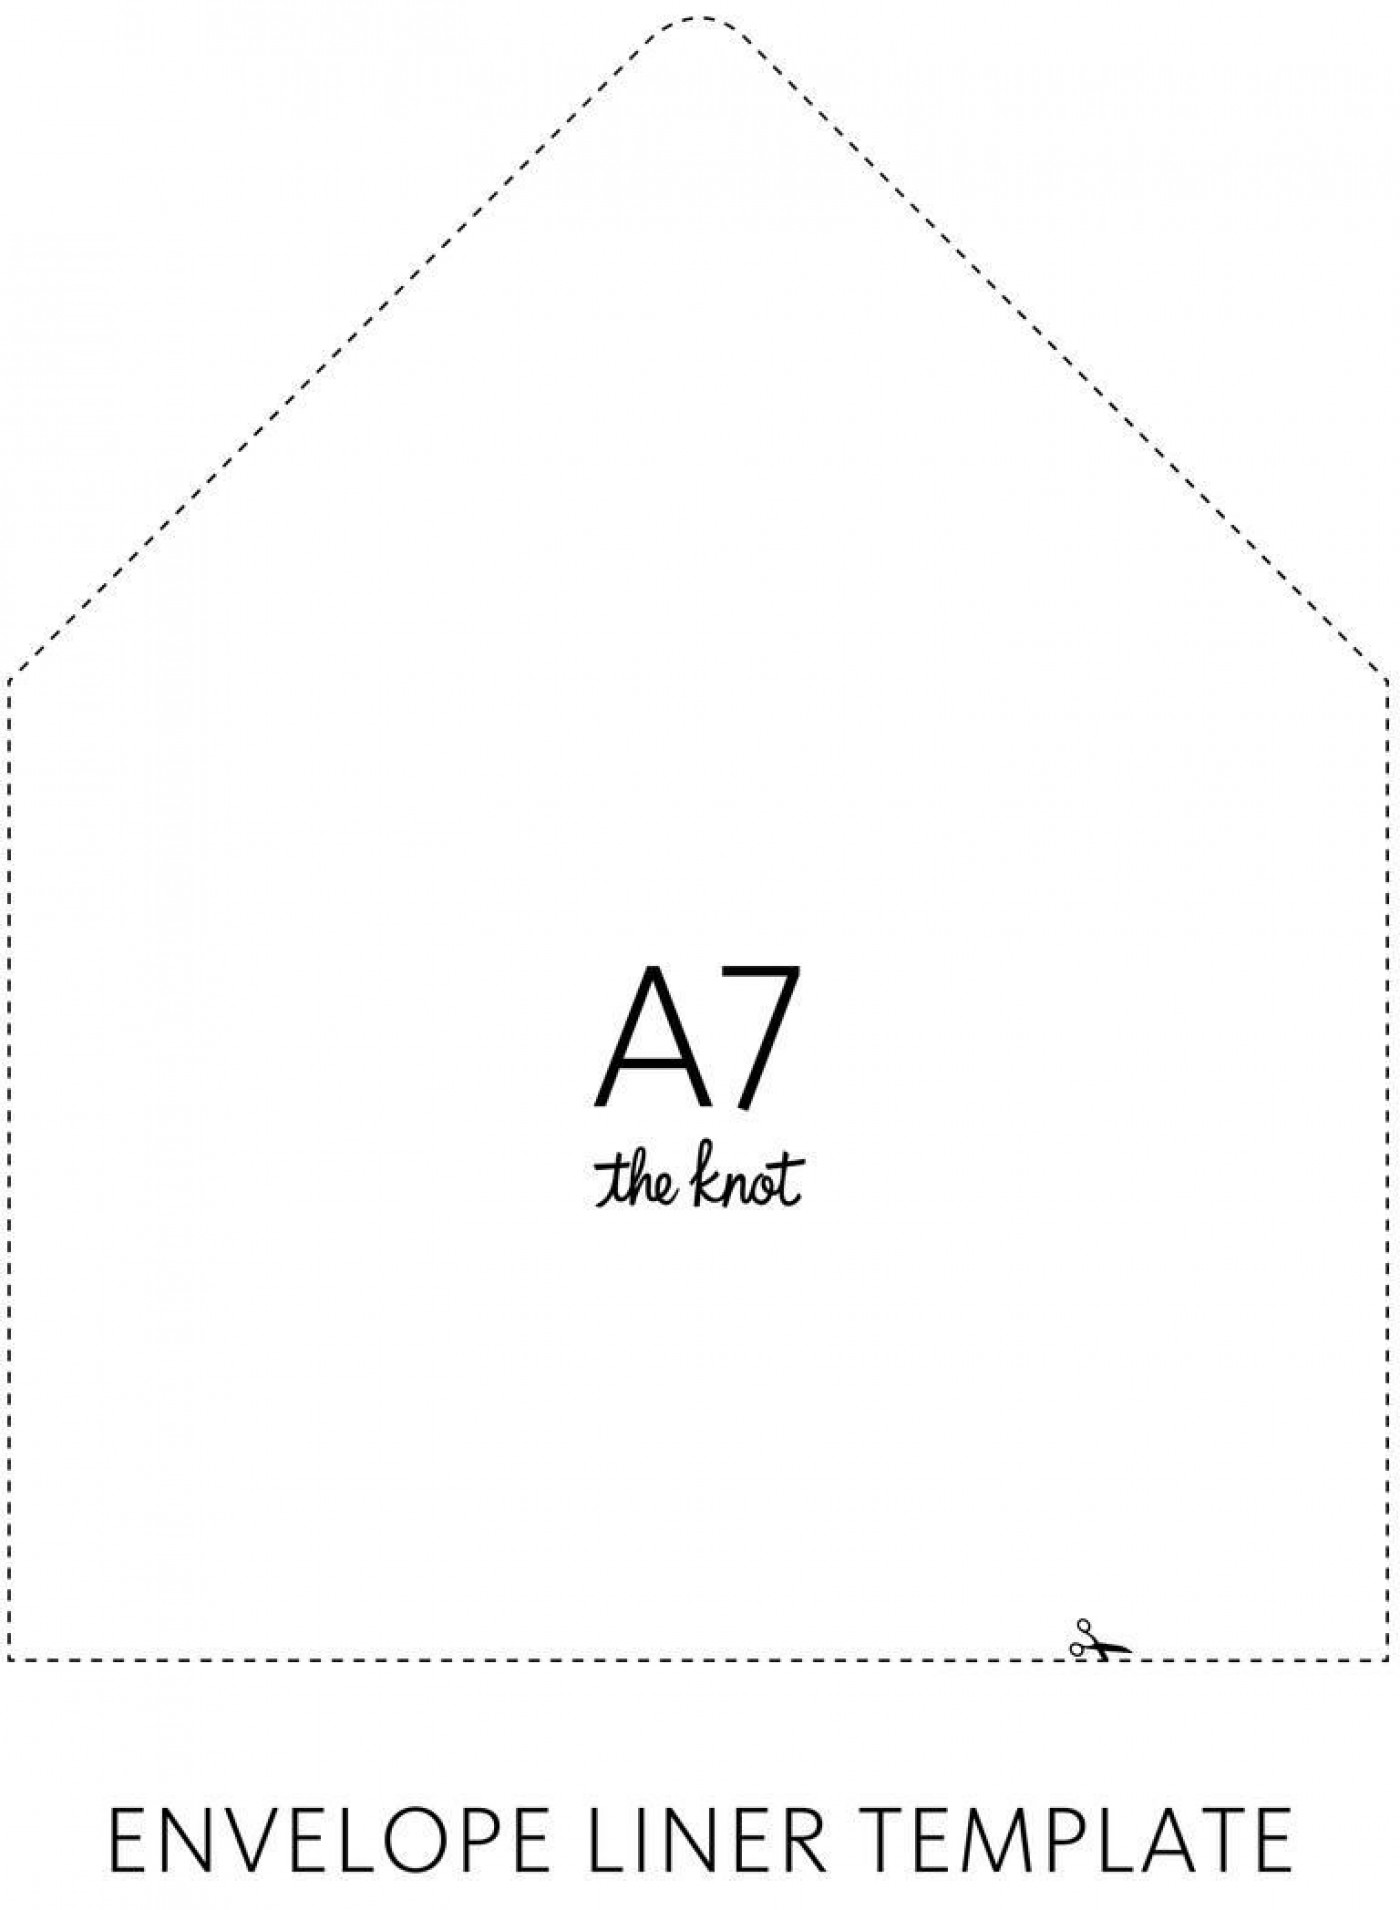 003 Sensational A7 Envelope Liner Template Free High Def 1400